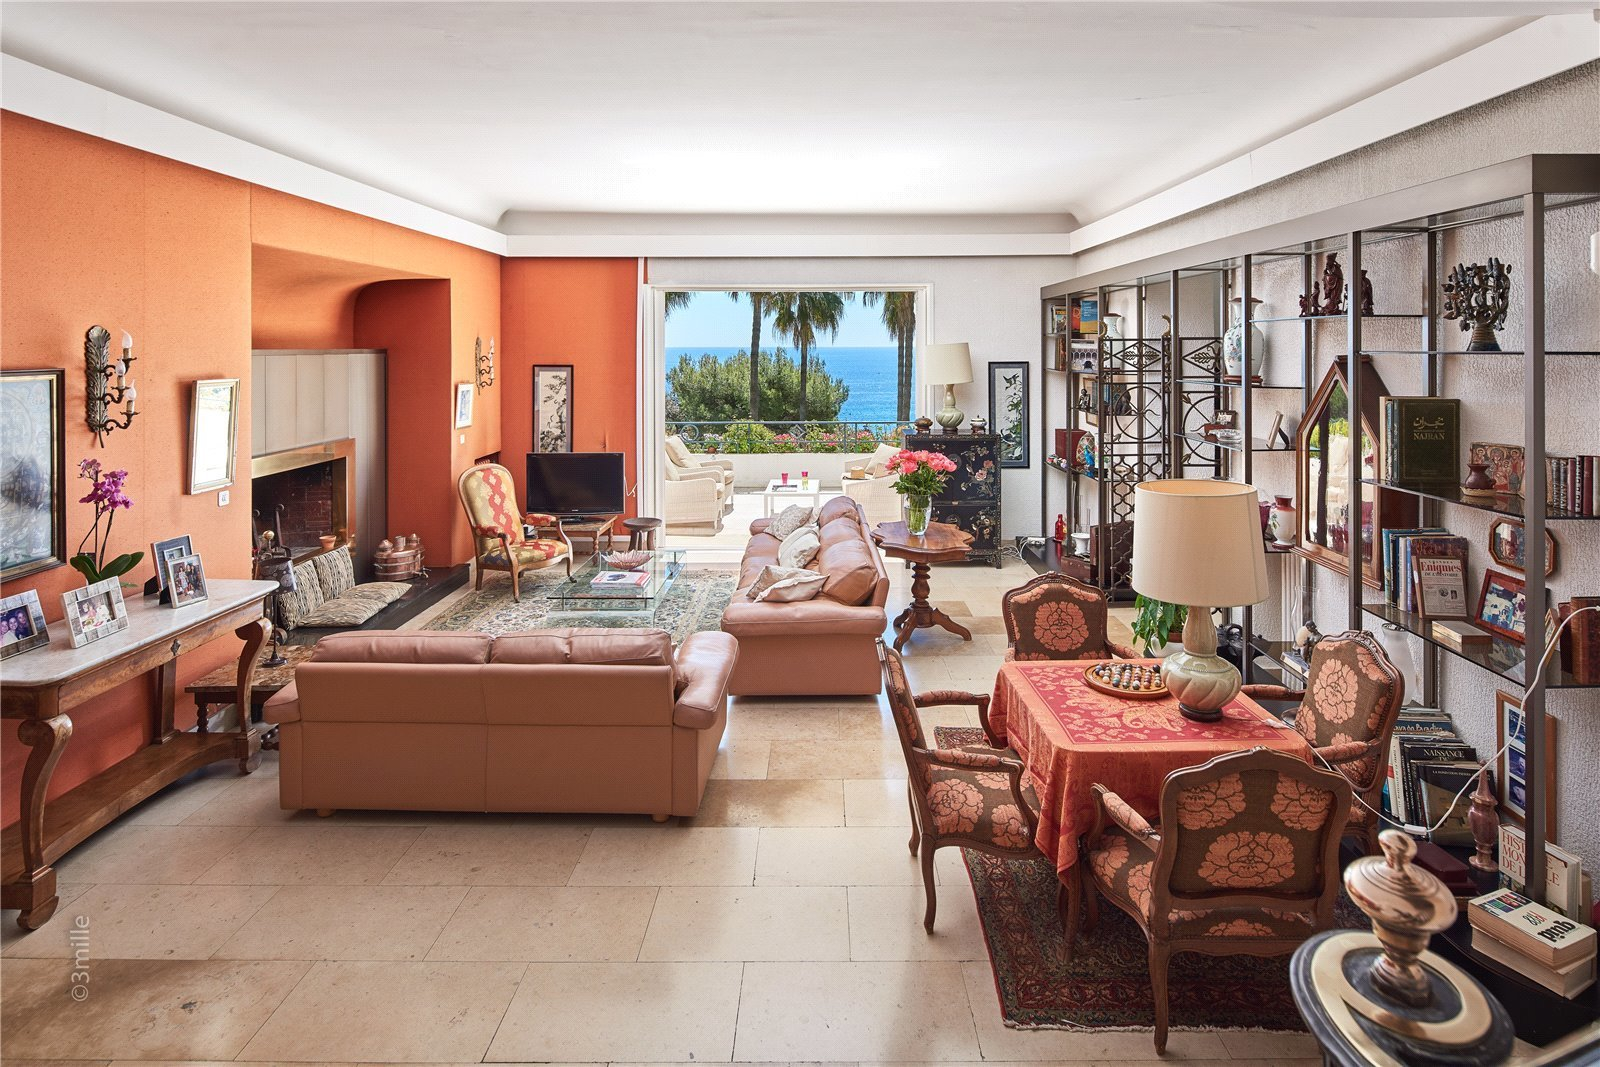 Buying Villa Cannes Elegant property, composed of main villa and caretaker's house, set in landscaped grounds with pool, boasting panoramic sea views.